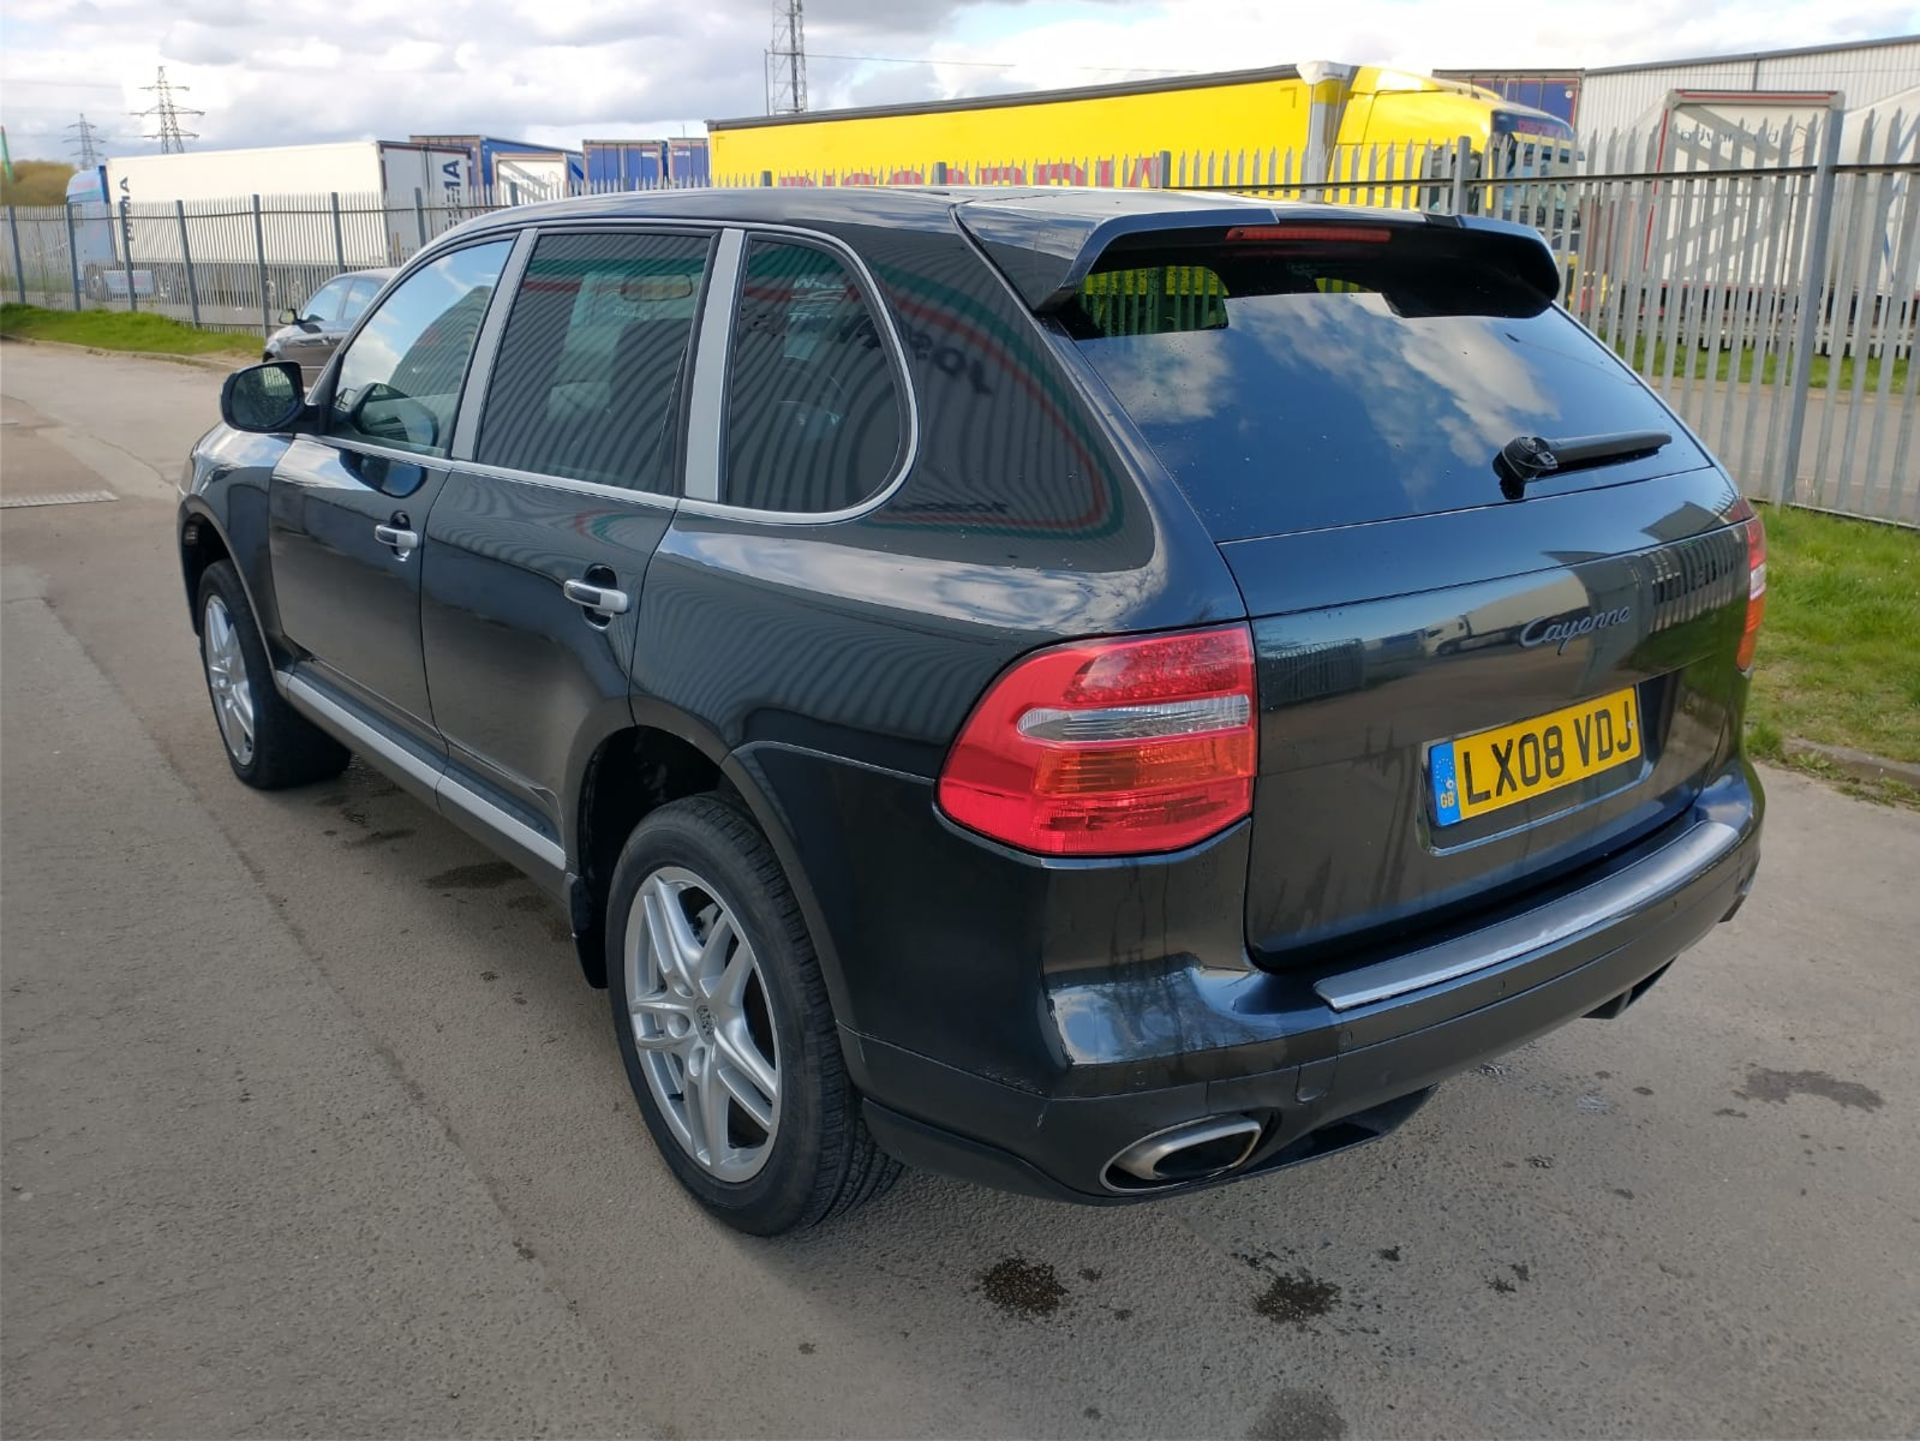 2008 Porsche Cayenne Tiptronic 3.6 5Dr SUV - CL505 - NO VAT ON THE HAMMER - Location: Corby, Northam - Image 5 of 16